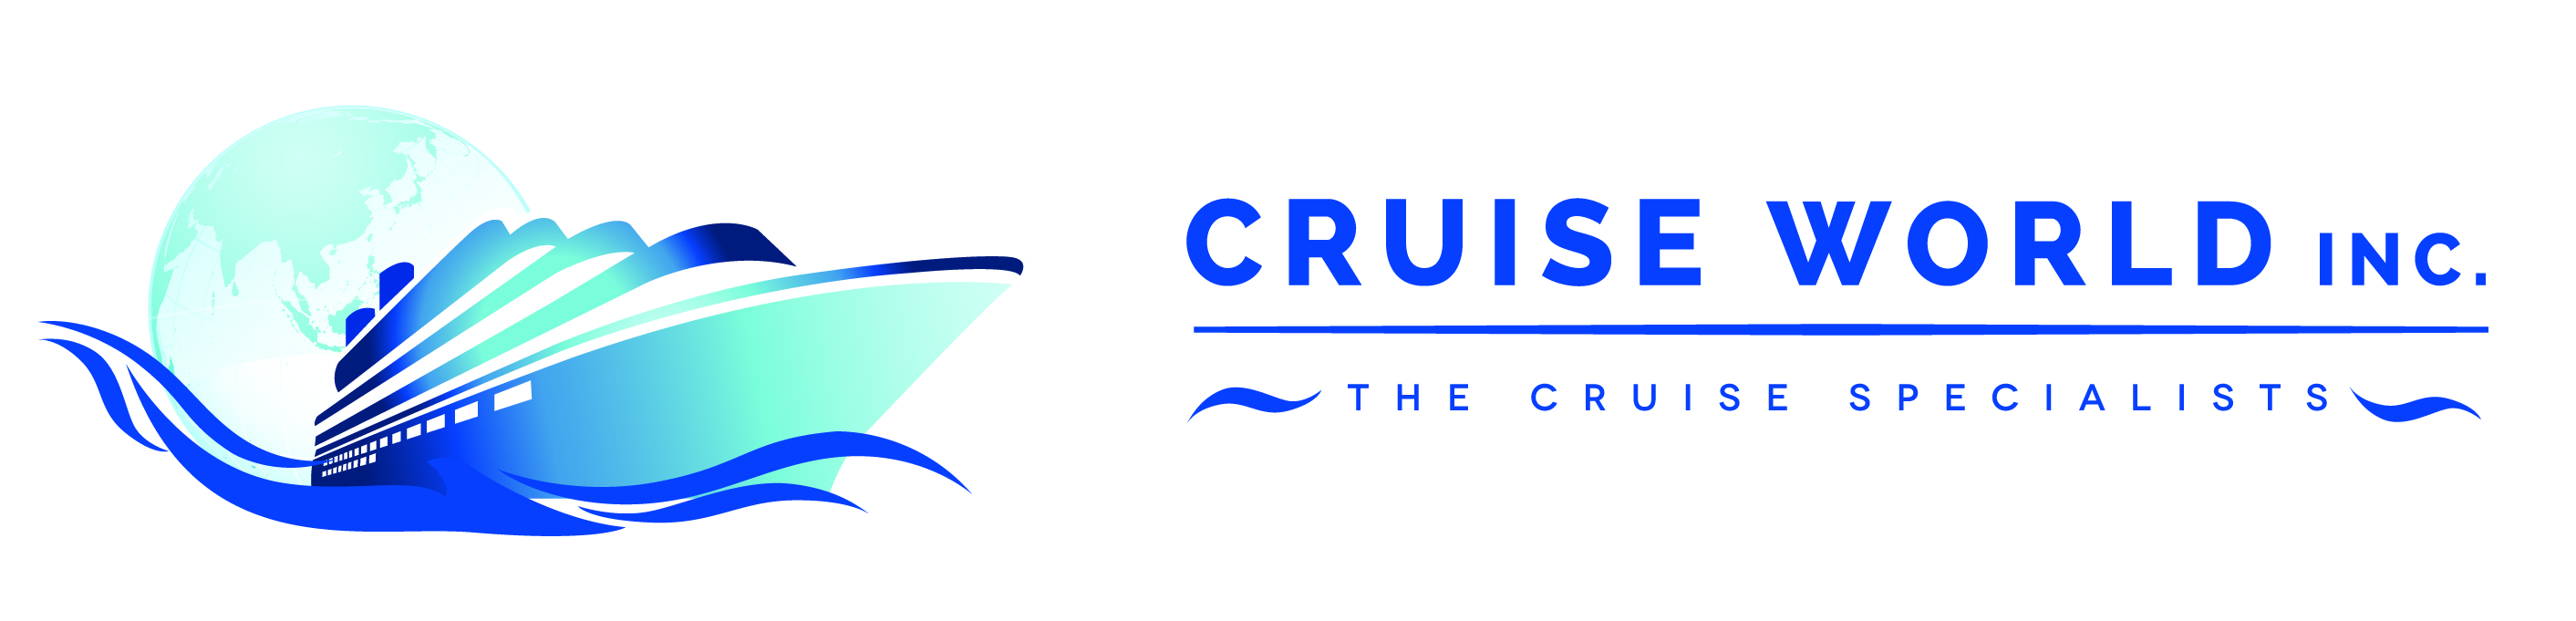 Cruise World Inc.